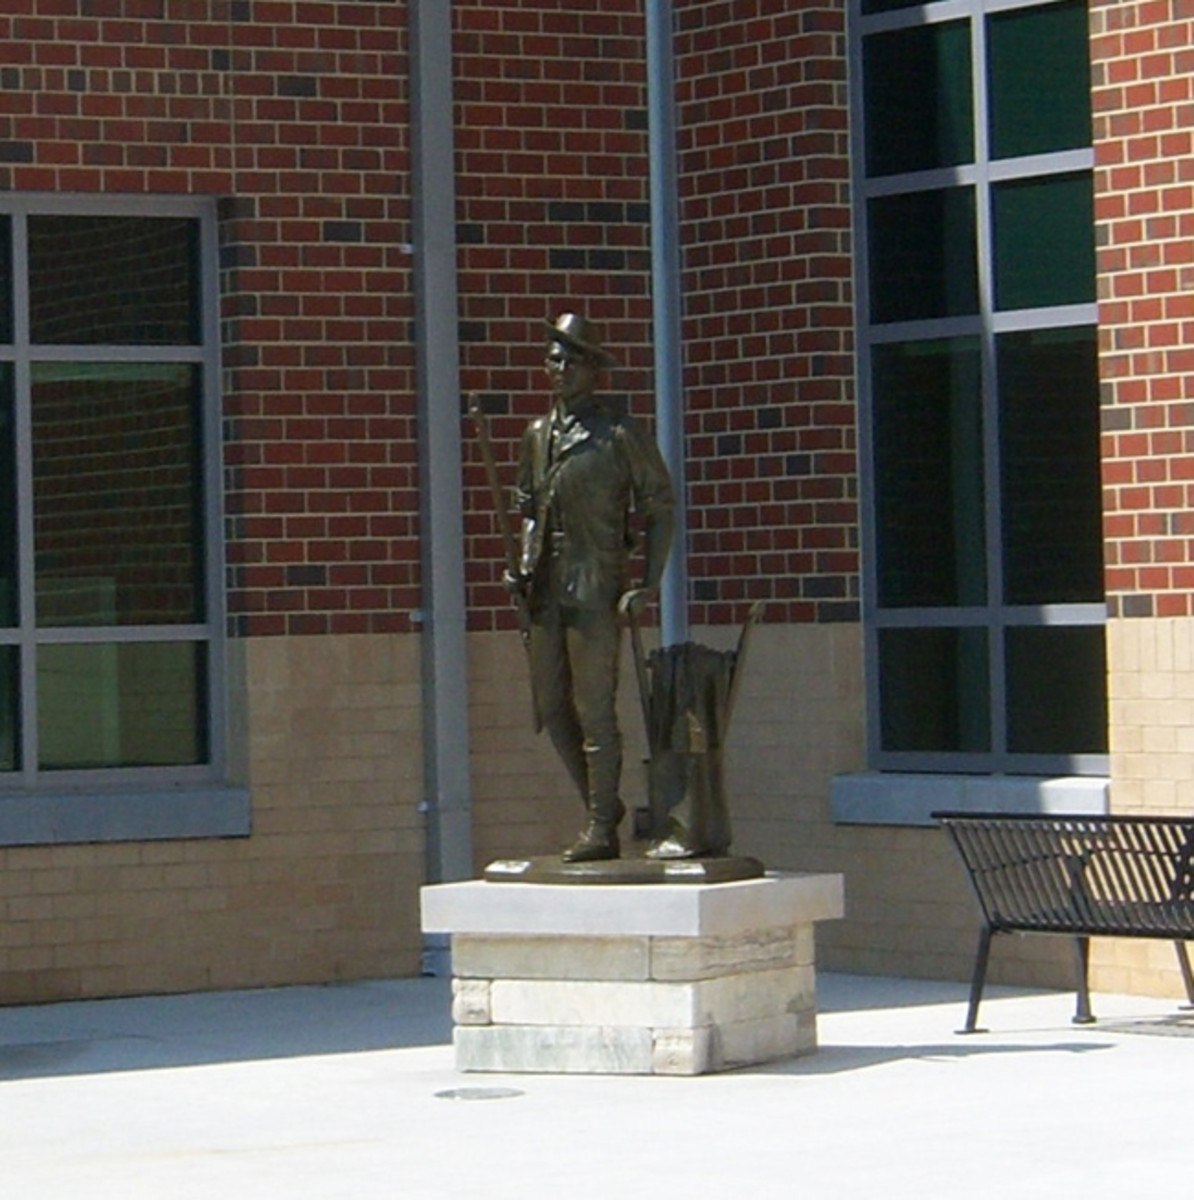 The Minuteman statue at the new Virginia National Guard Joint Force Headquarters located at Defense Supply Center–Richmond (DSCR), located just south of Richmond, Virginia.